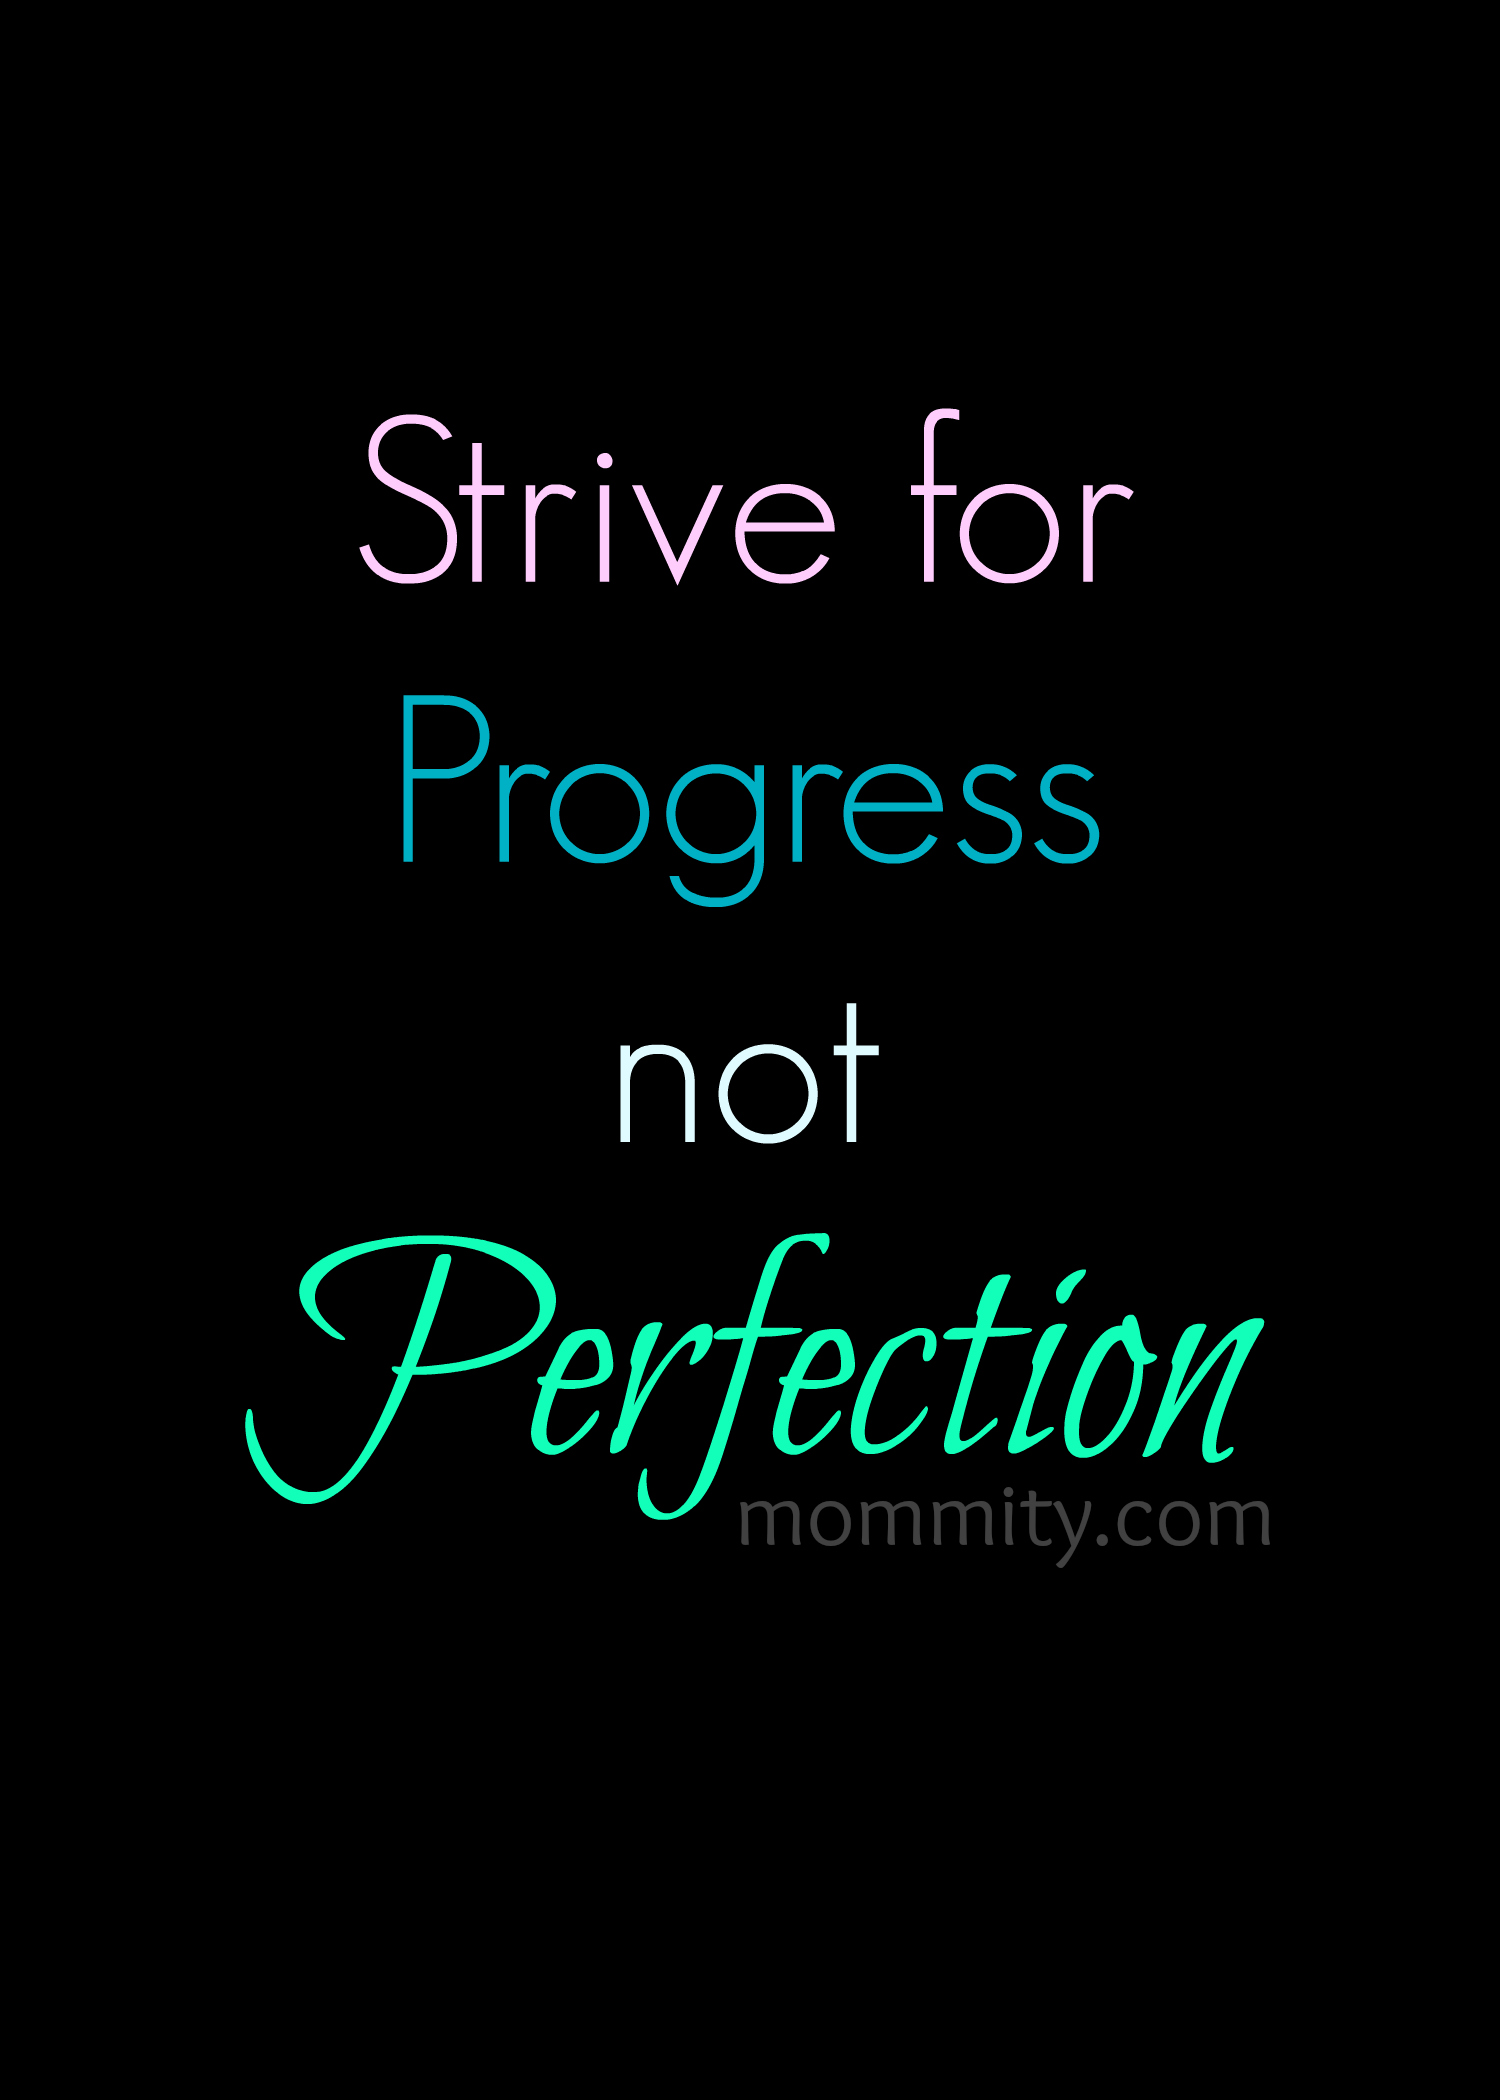 Strive for Progress not Perfection - Fitness Motivation Quotes